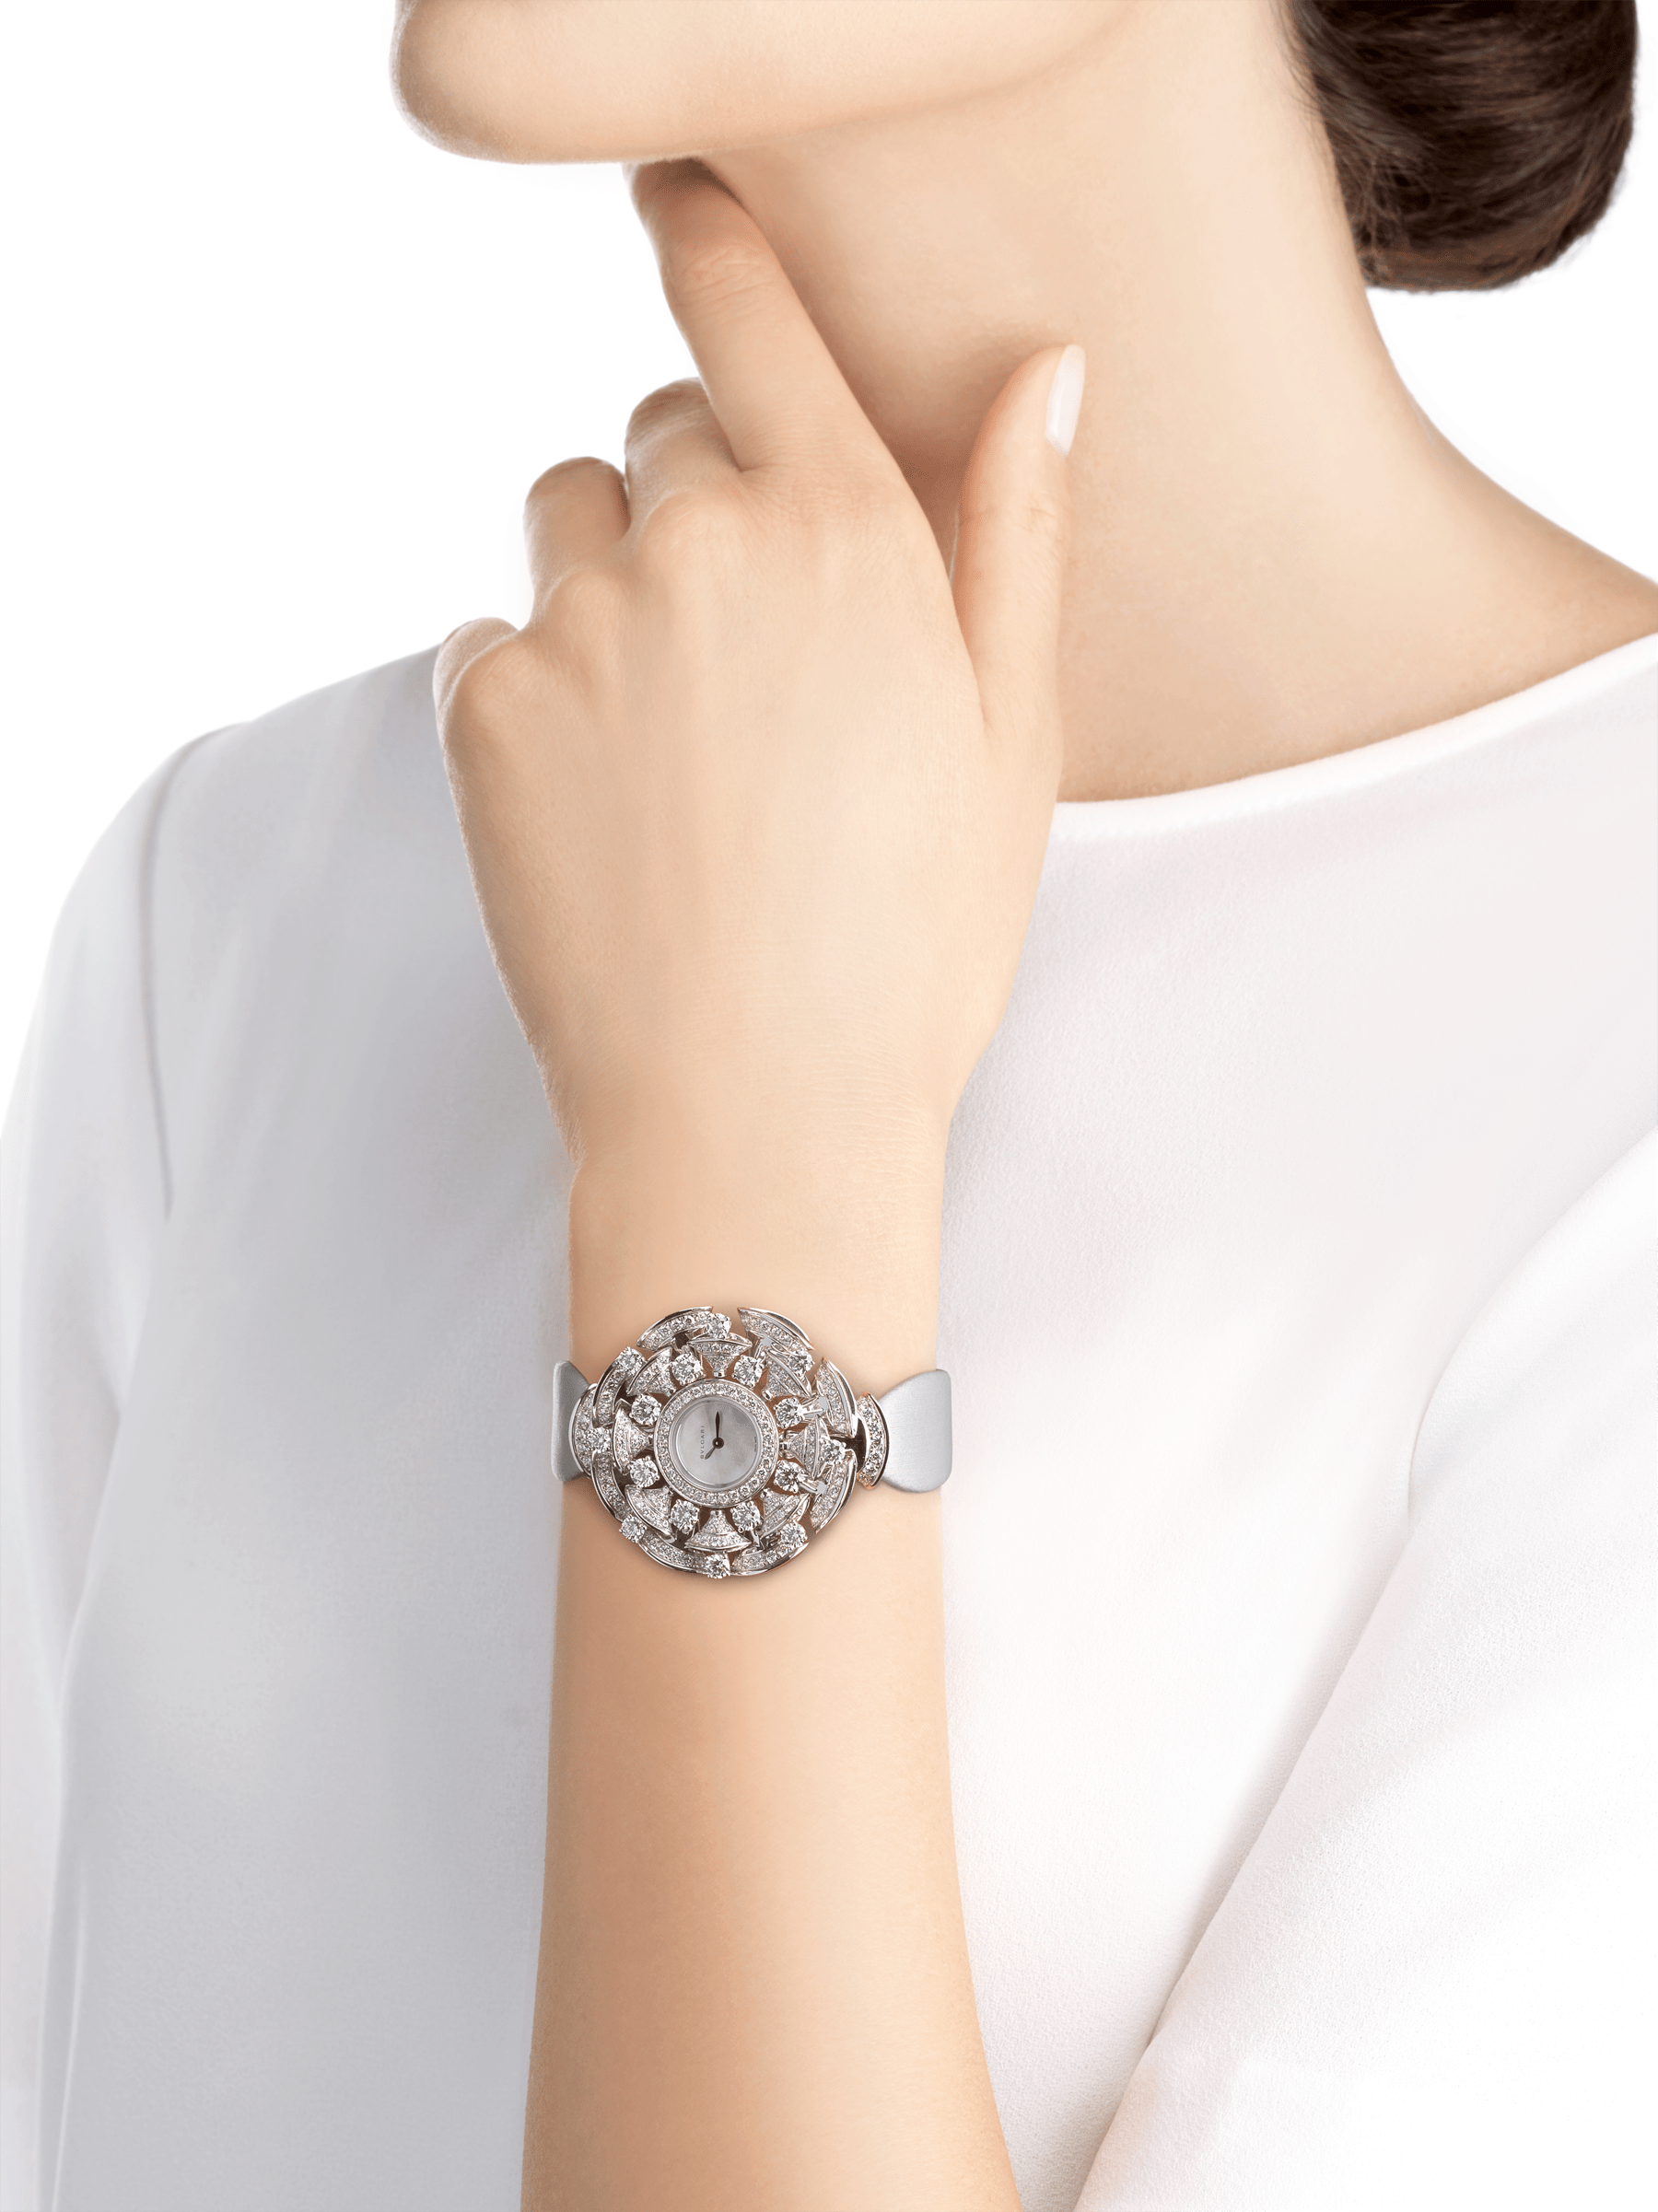 DIVAS' DREAM watch with 18 kt white gold case set with brilliant and round-cut diamonds, white mother-of-pearl dial and grey satin bracelet 102254 image 3